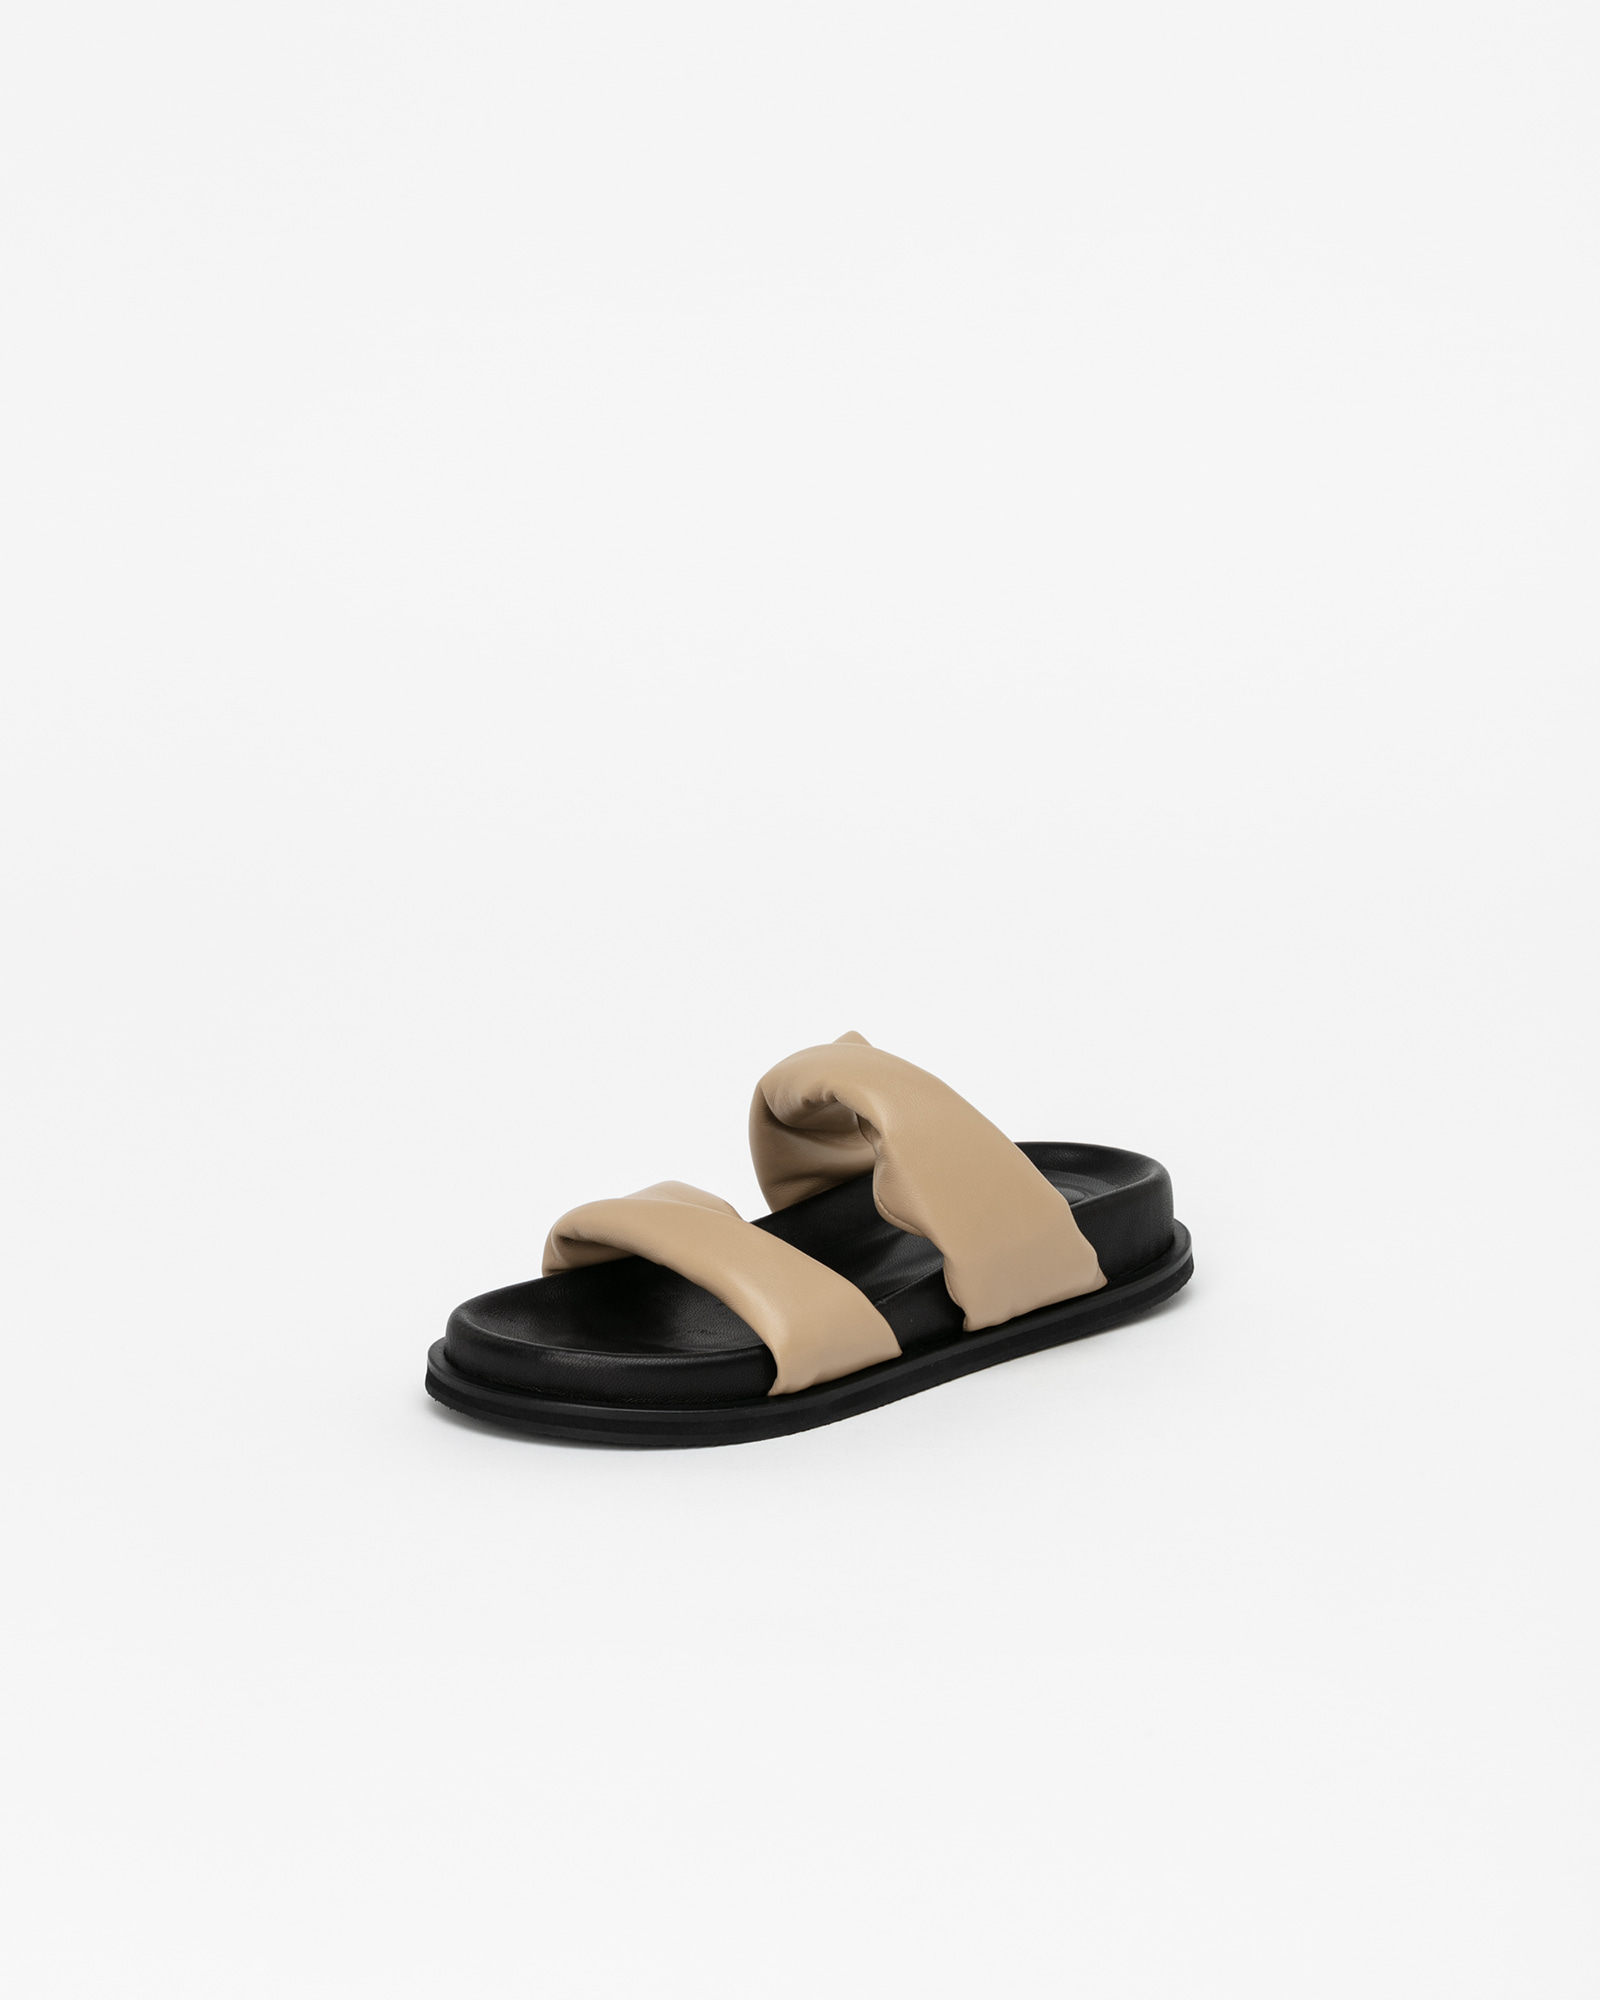 Ceylon Soft Footbed Slides in Black with Beige